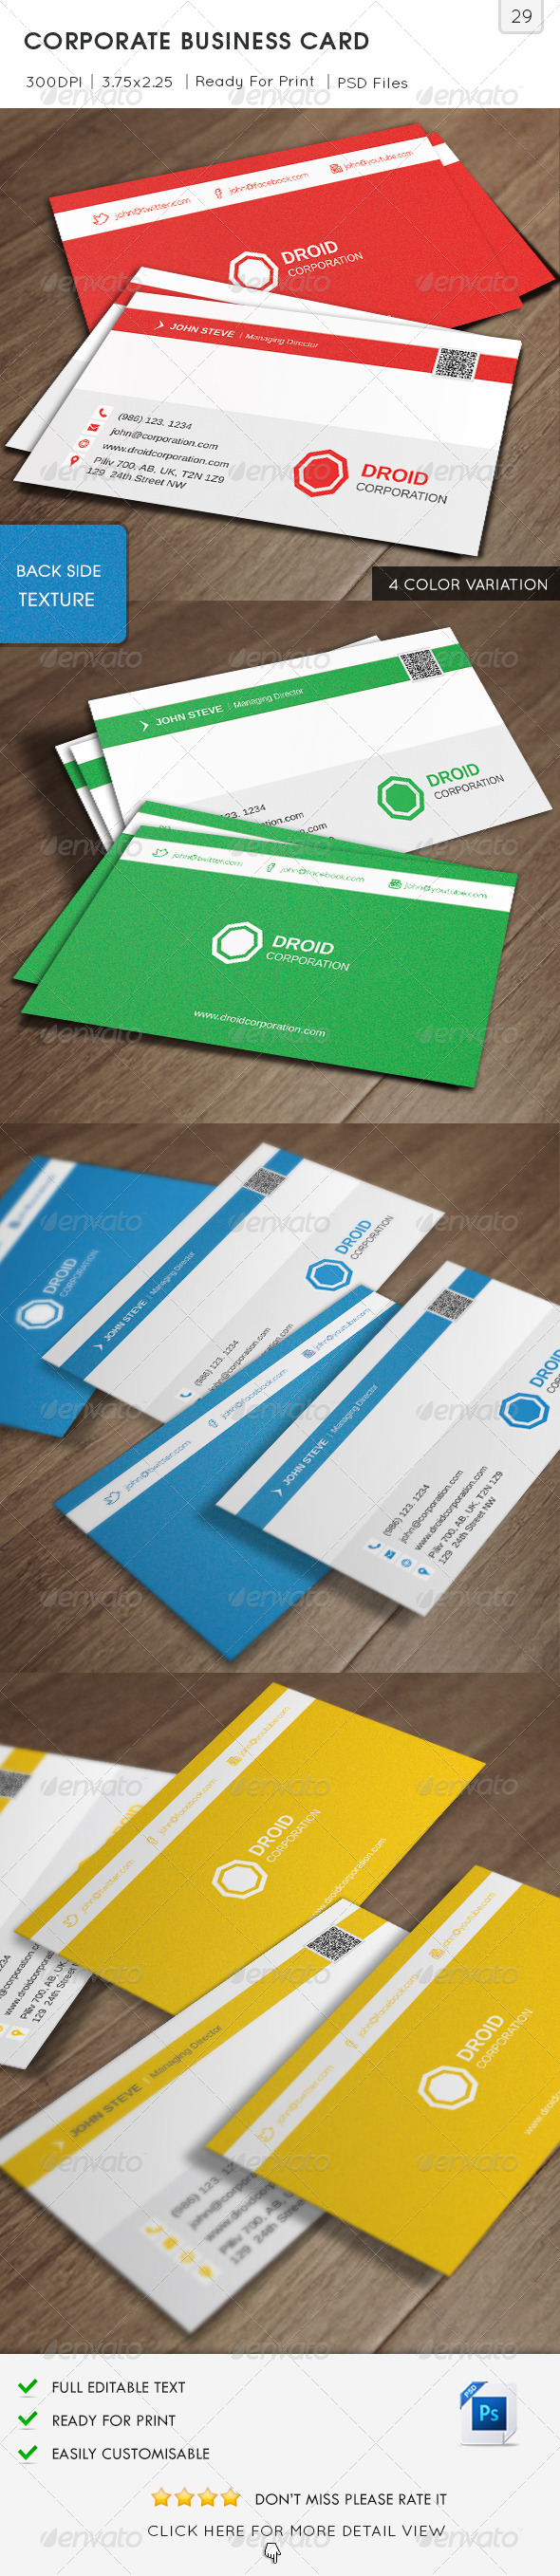 GraphicRiver Corporate Business Card v29 6322914